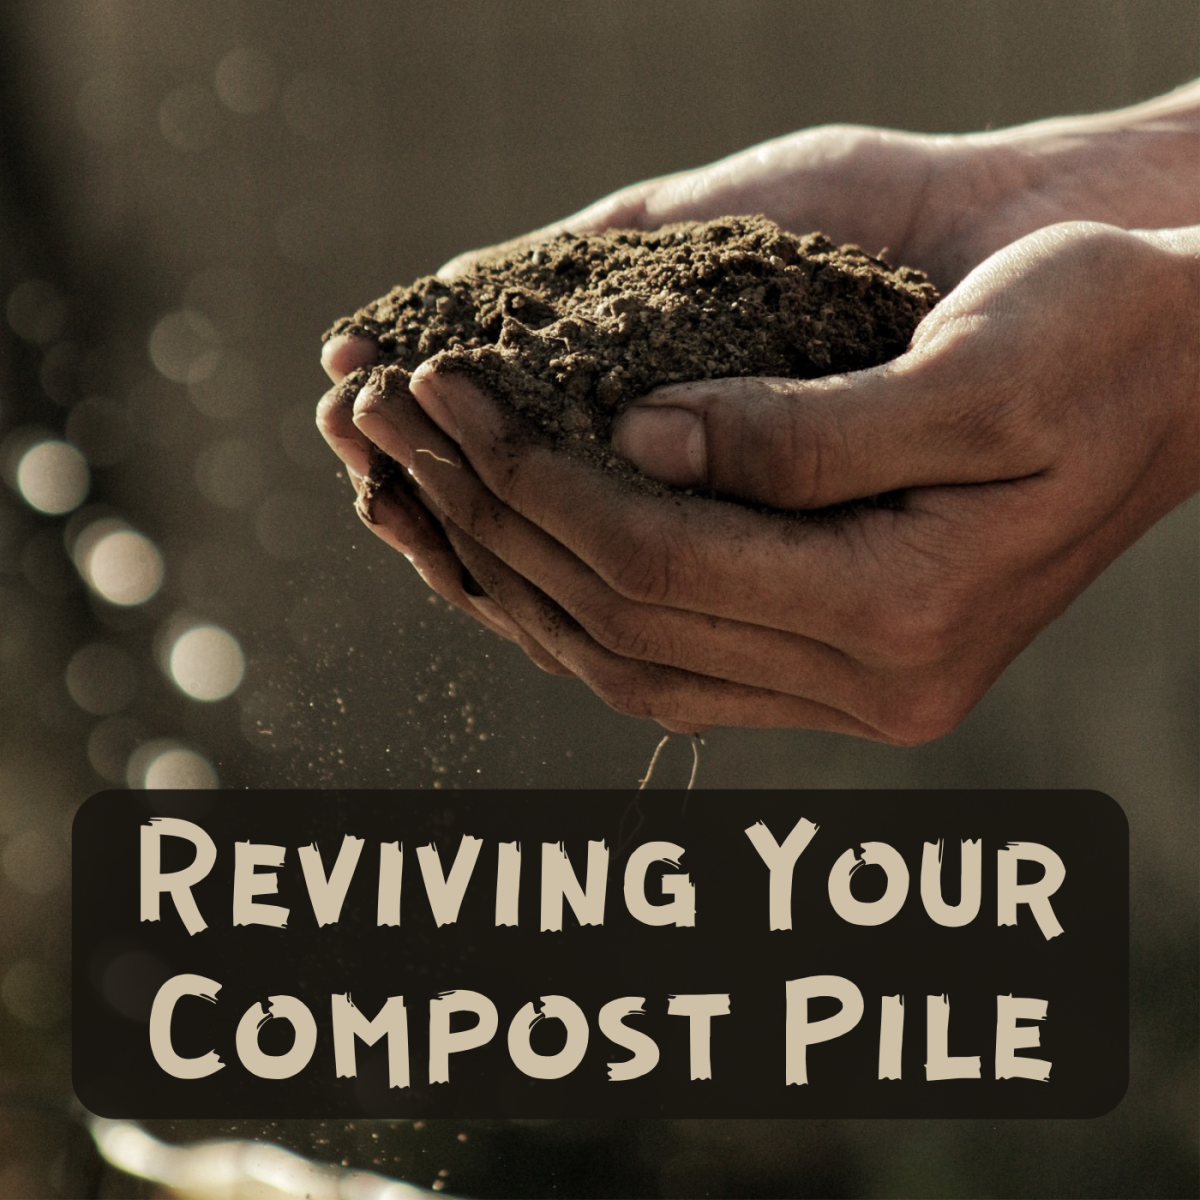 Follow this process to speed up decomposition in a dormant compost pile.